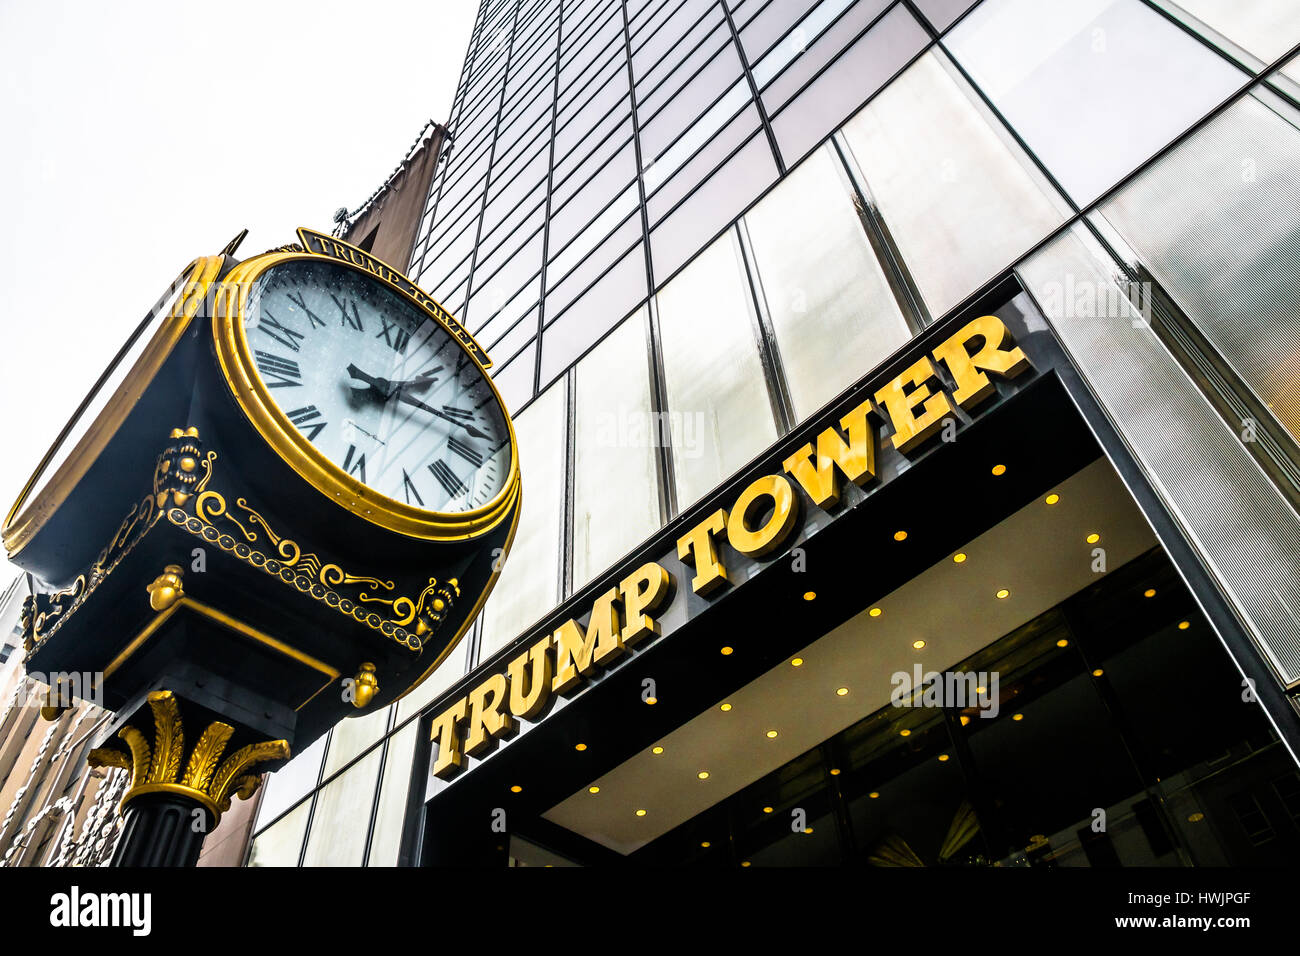 Facade of the Trump Tower, residence of president elect Donald Trump - Stock Image